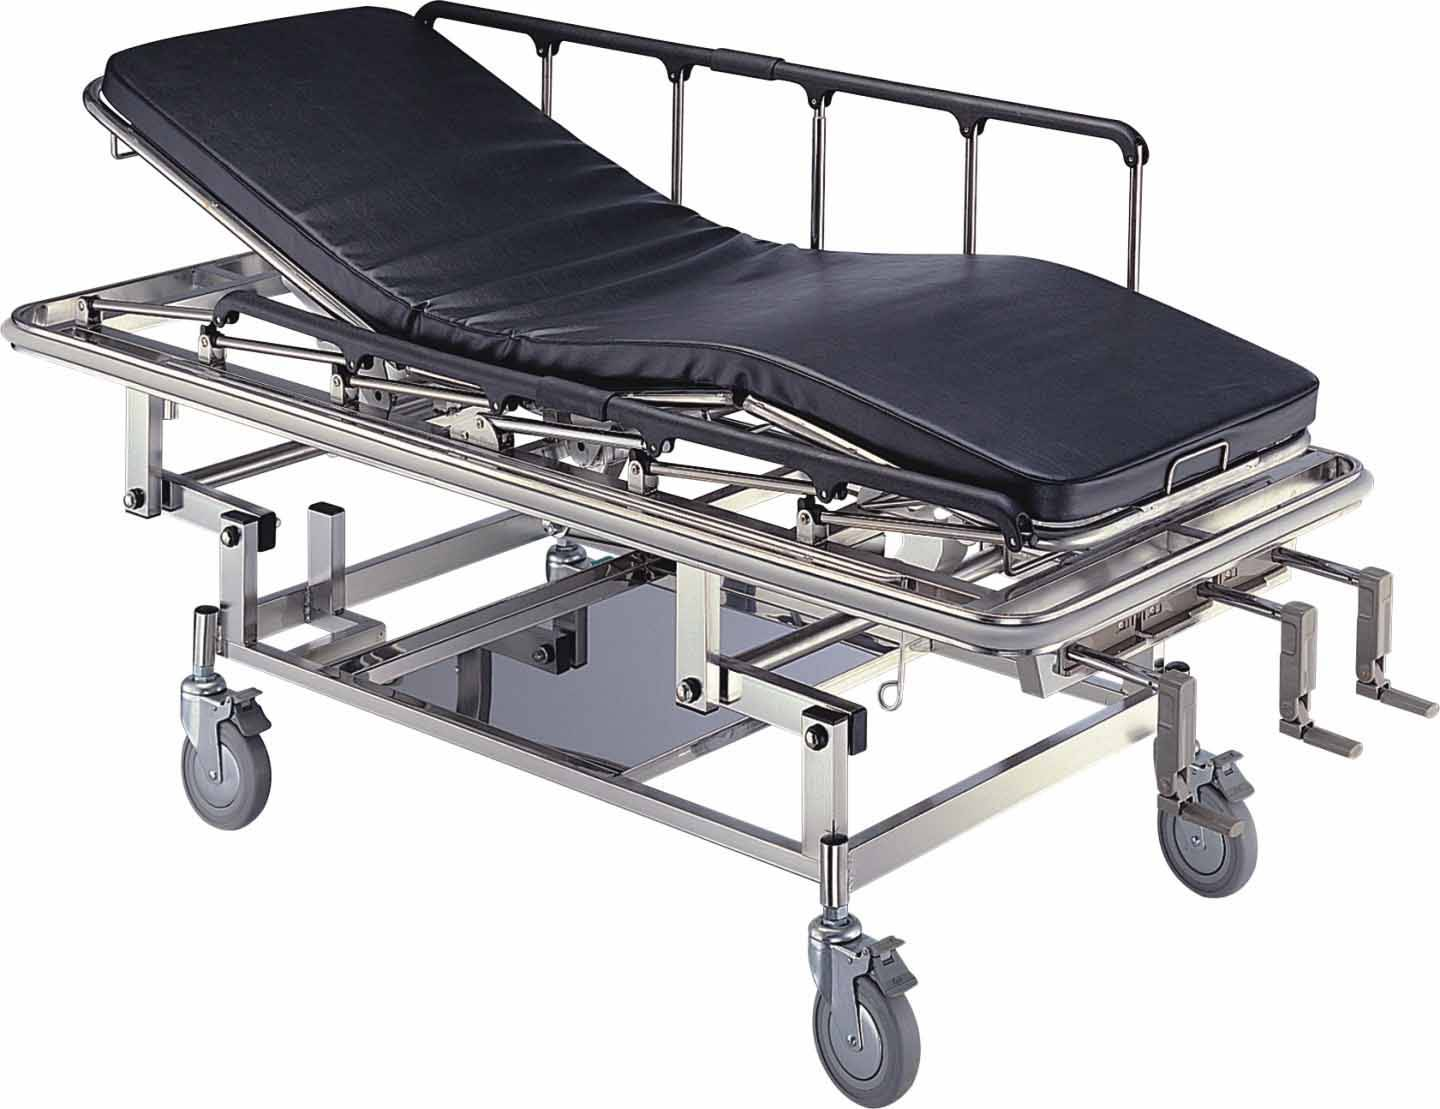 Emergency Stretcher Cart, Hospital, Trolley, Cart